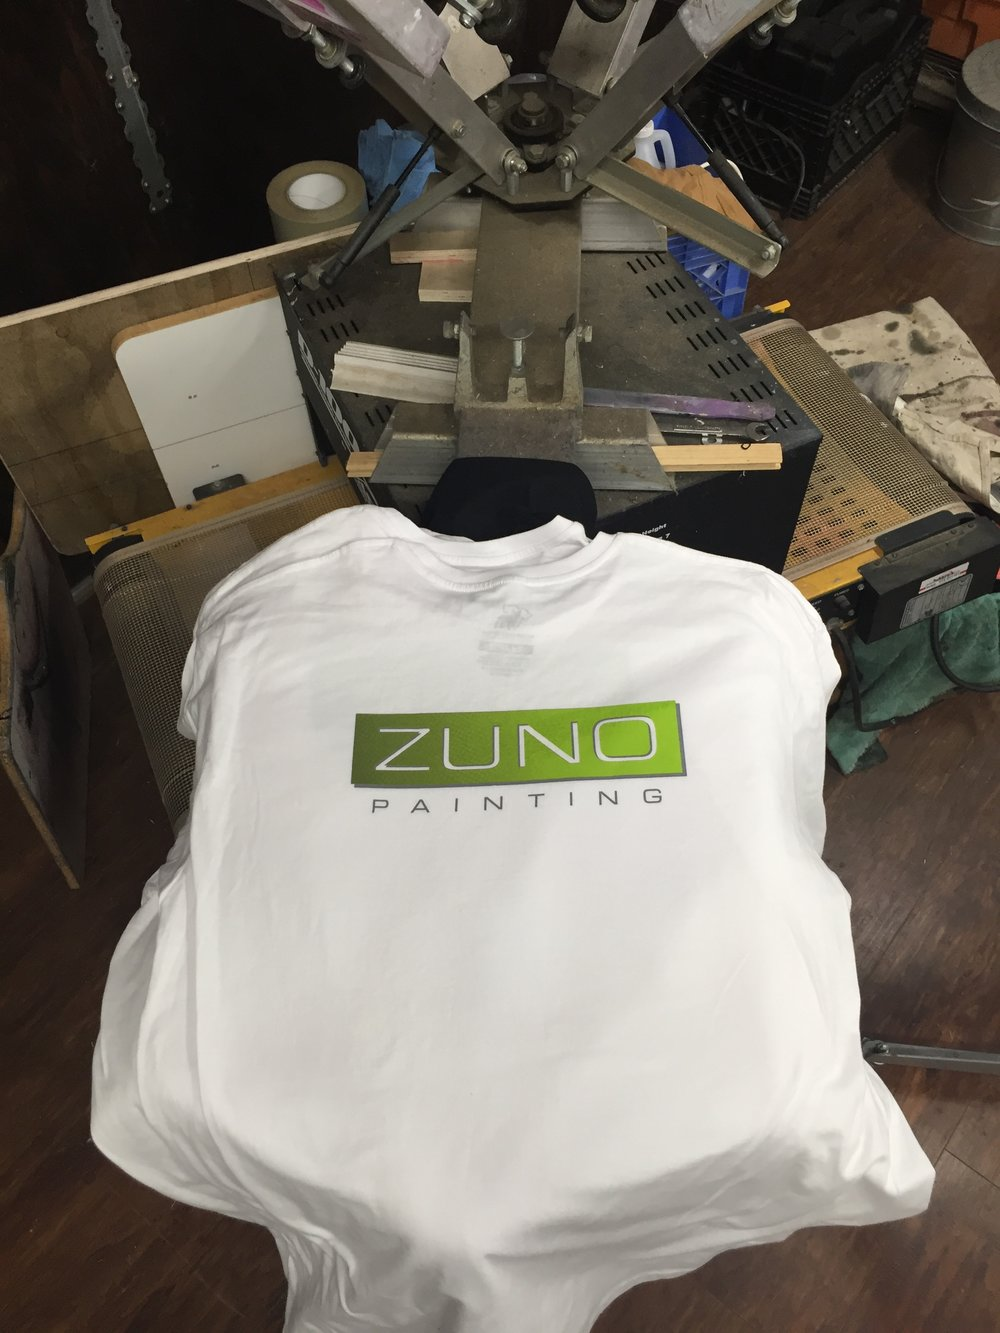 Zuno Painting T-shirts done and done,